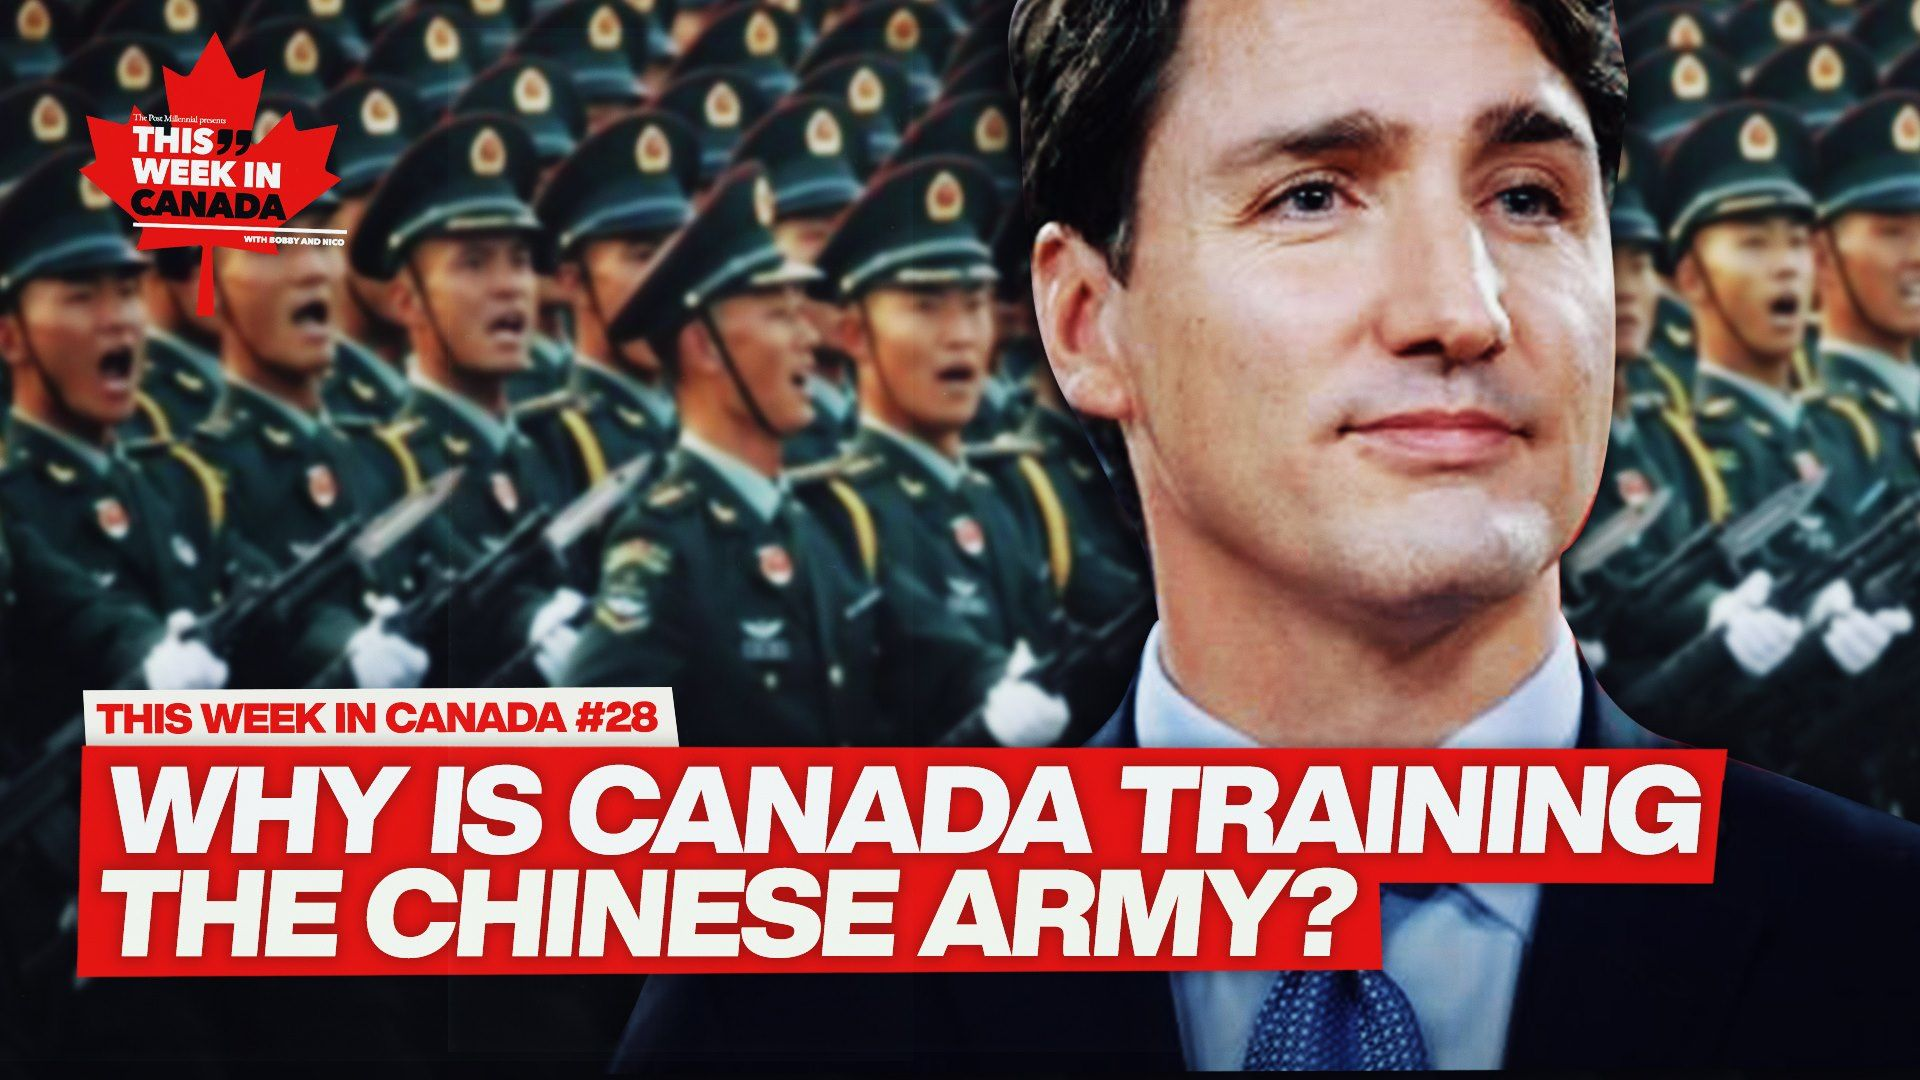 Why was the Chinese military invited to train in Canada?